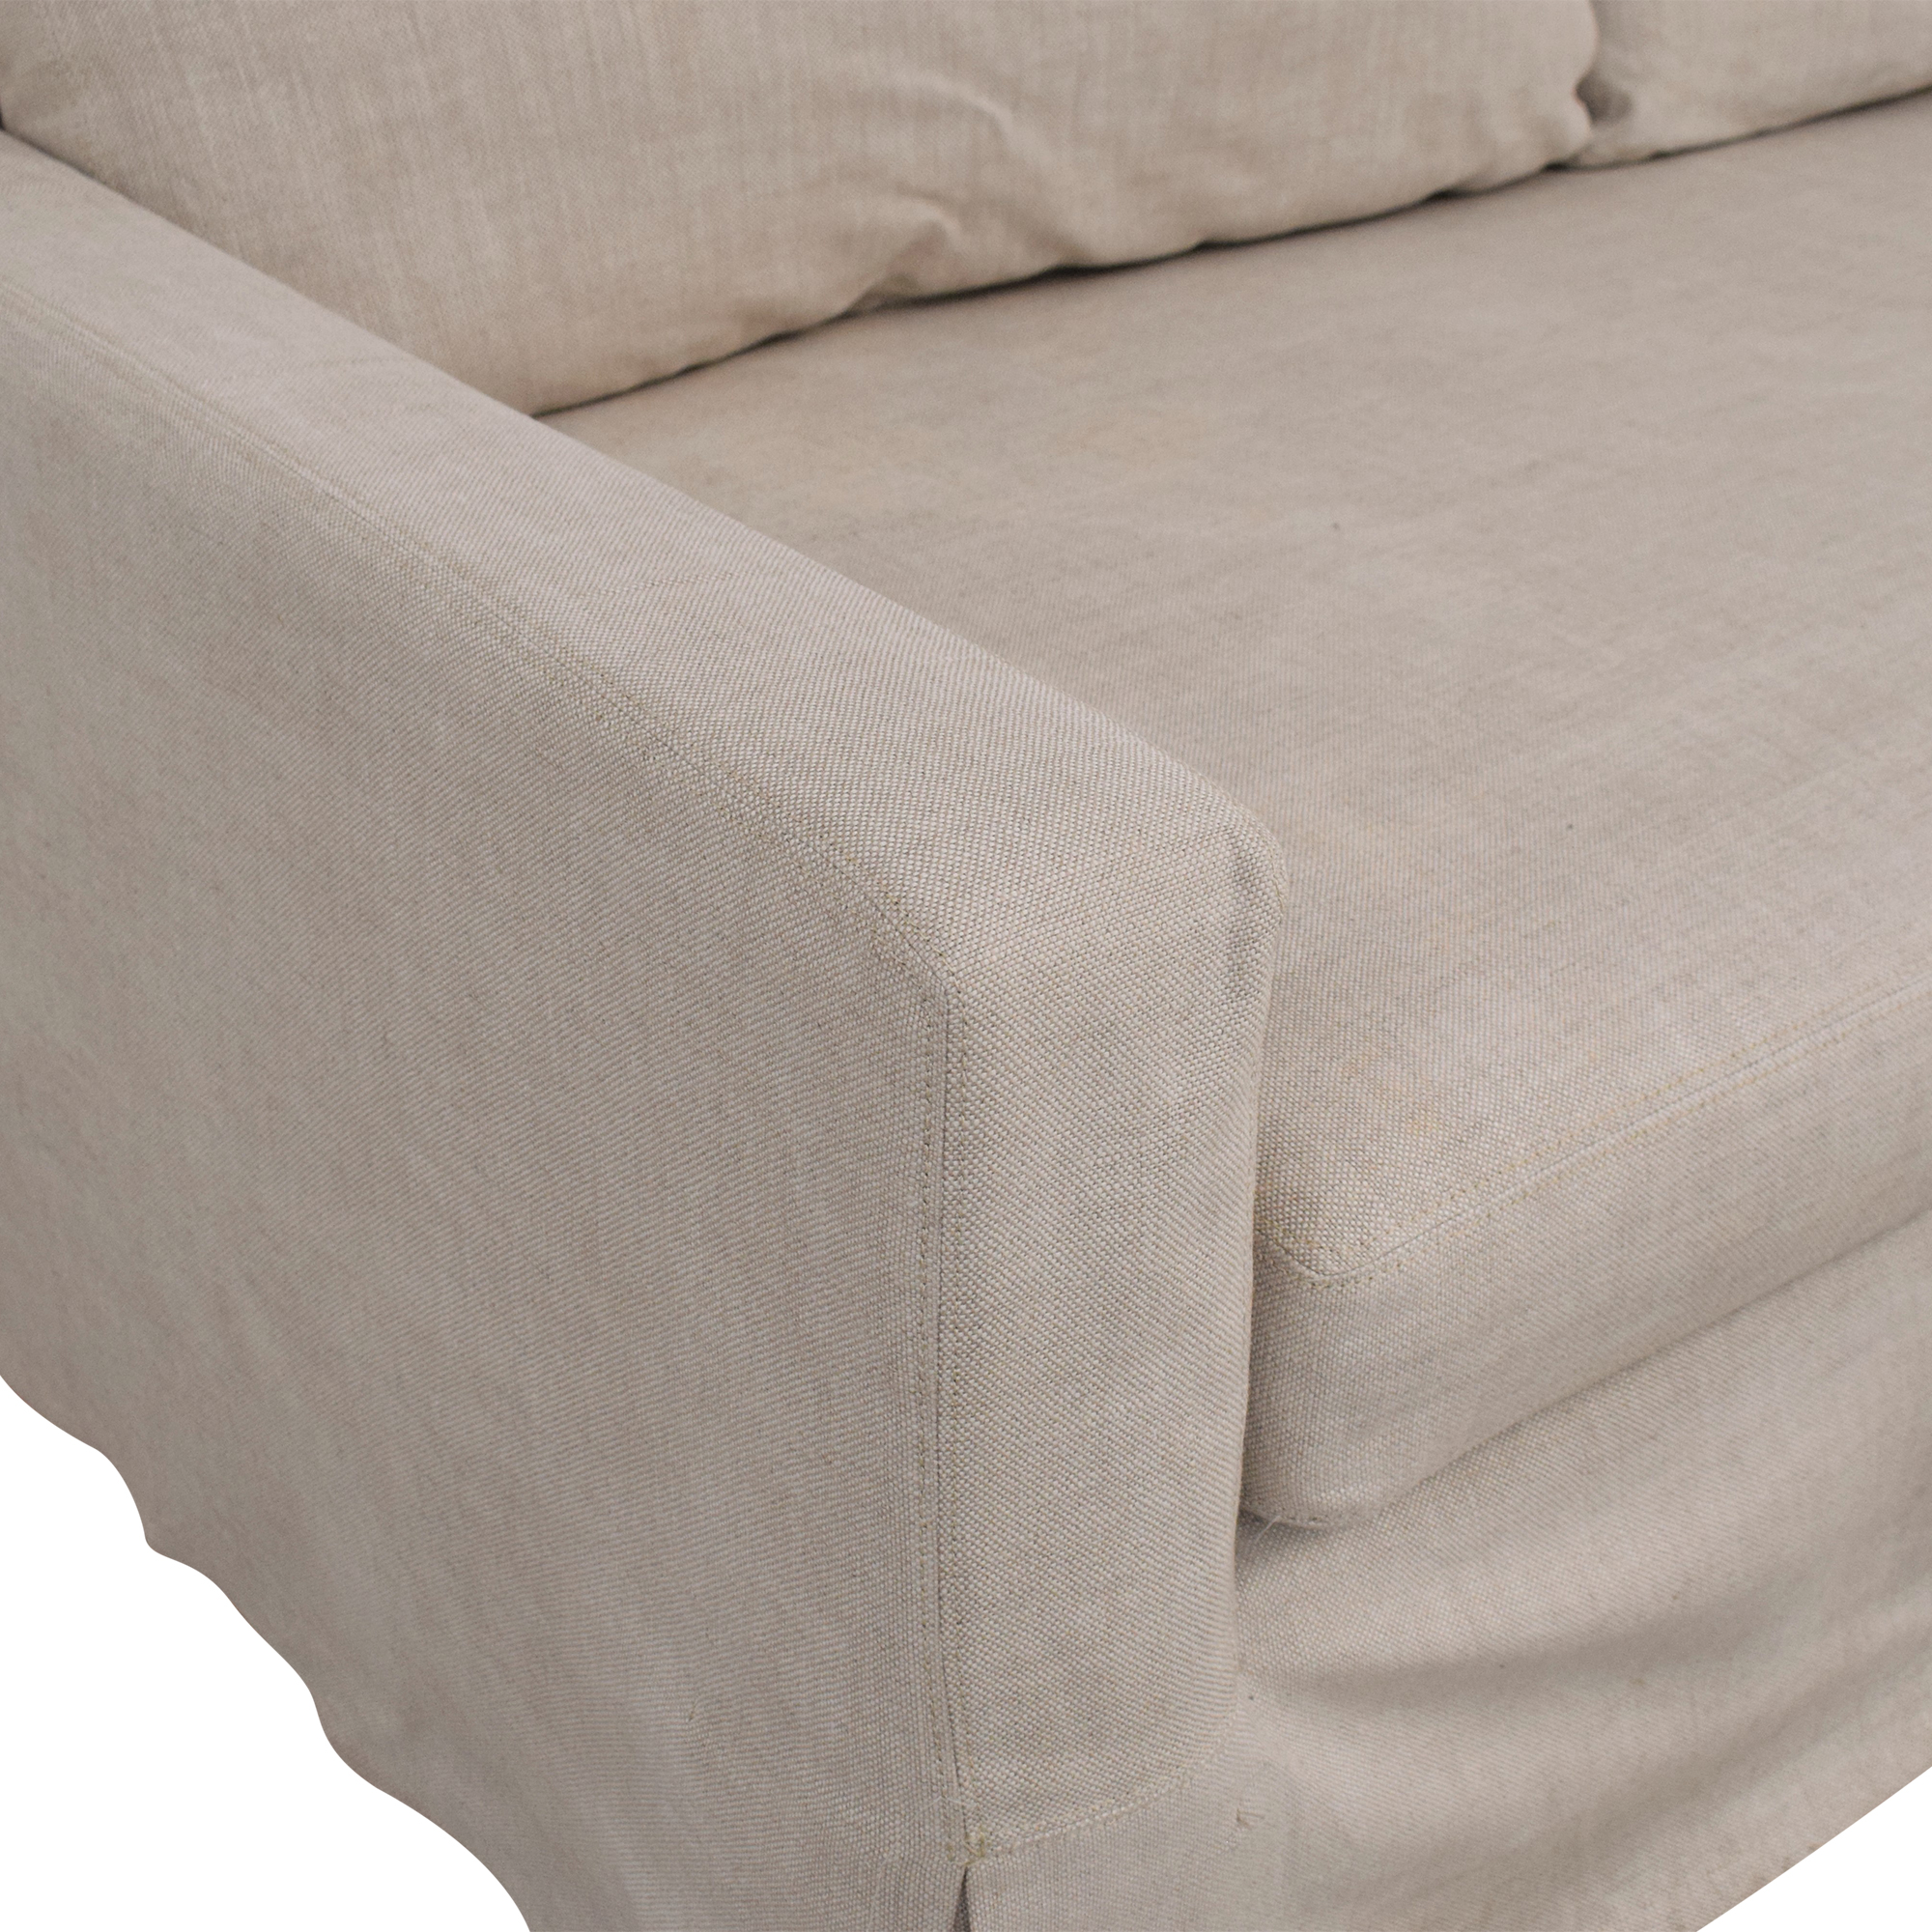 Restoration Hardware Restoration Hardware Belgian Track Arm Slipcovered Sofa second hand